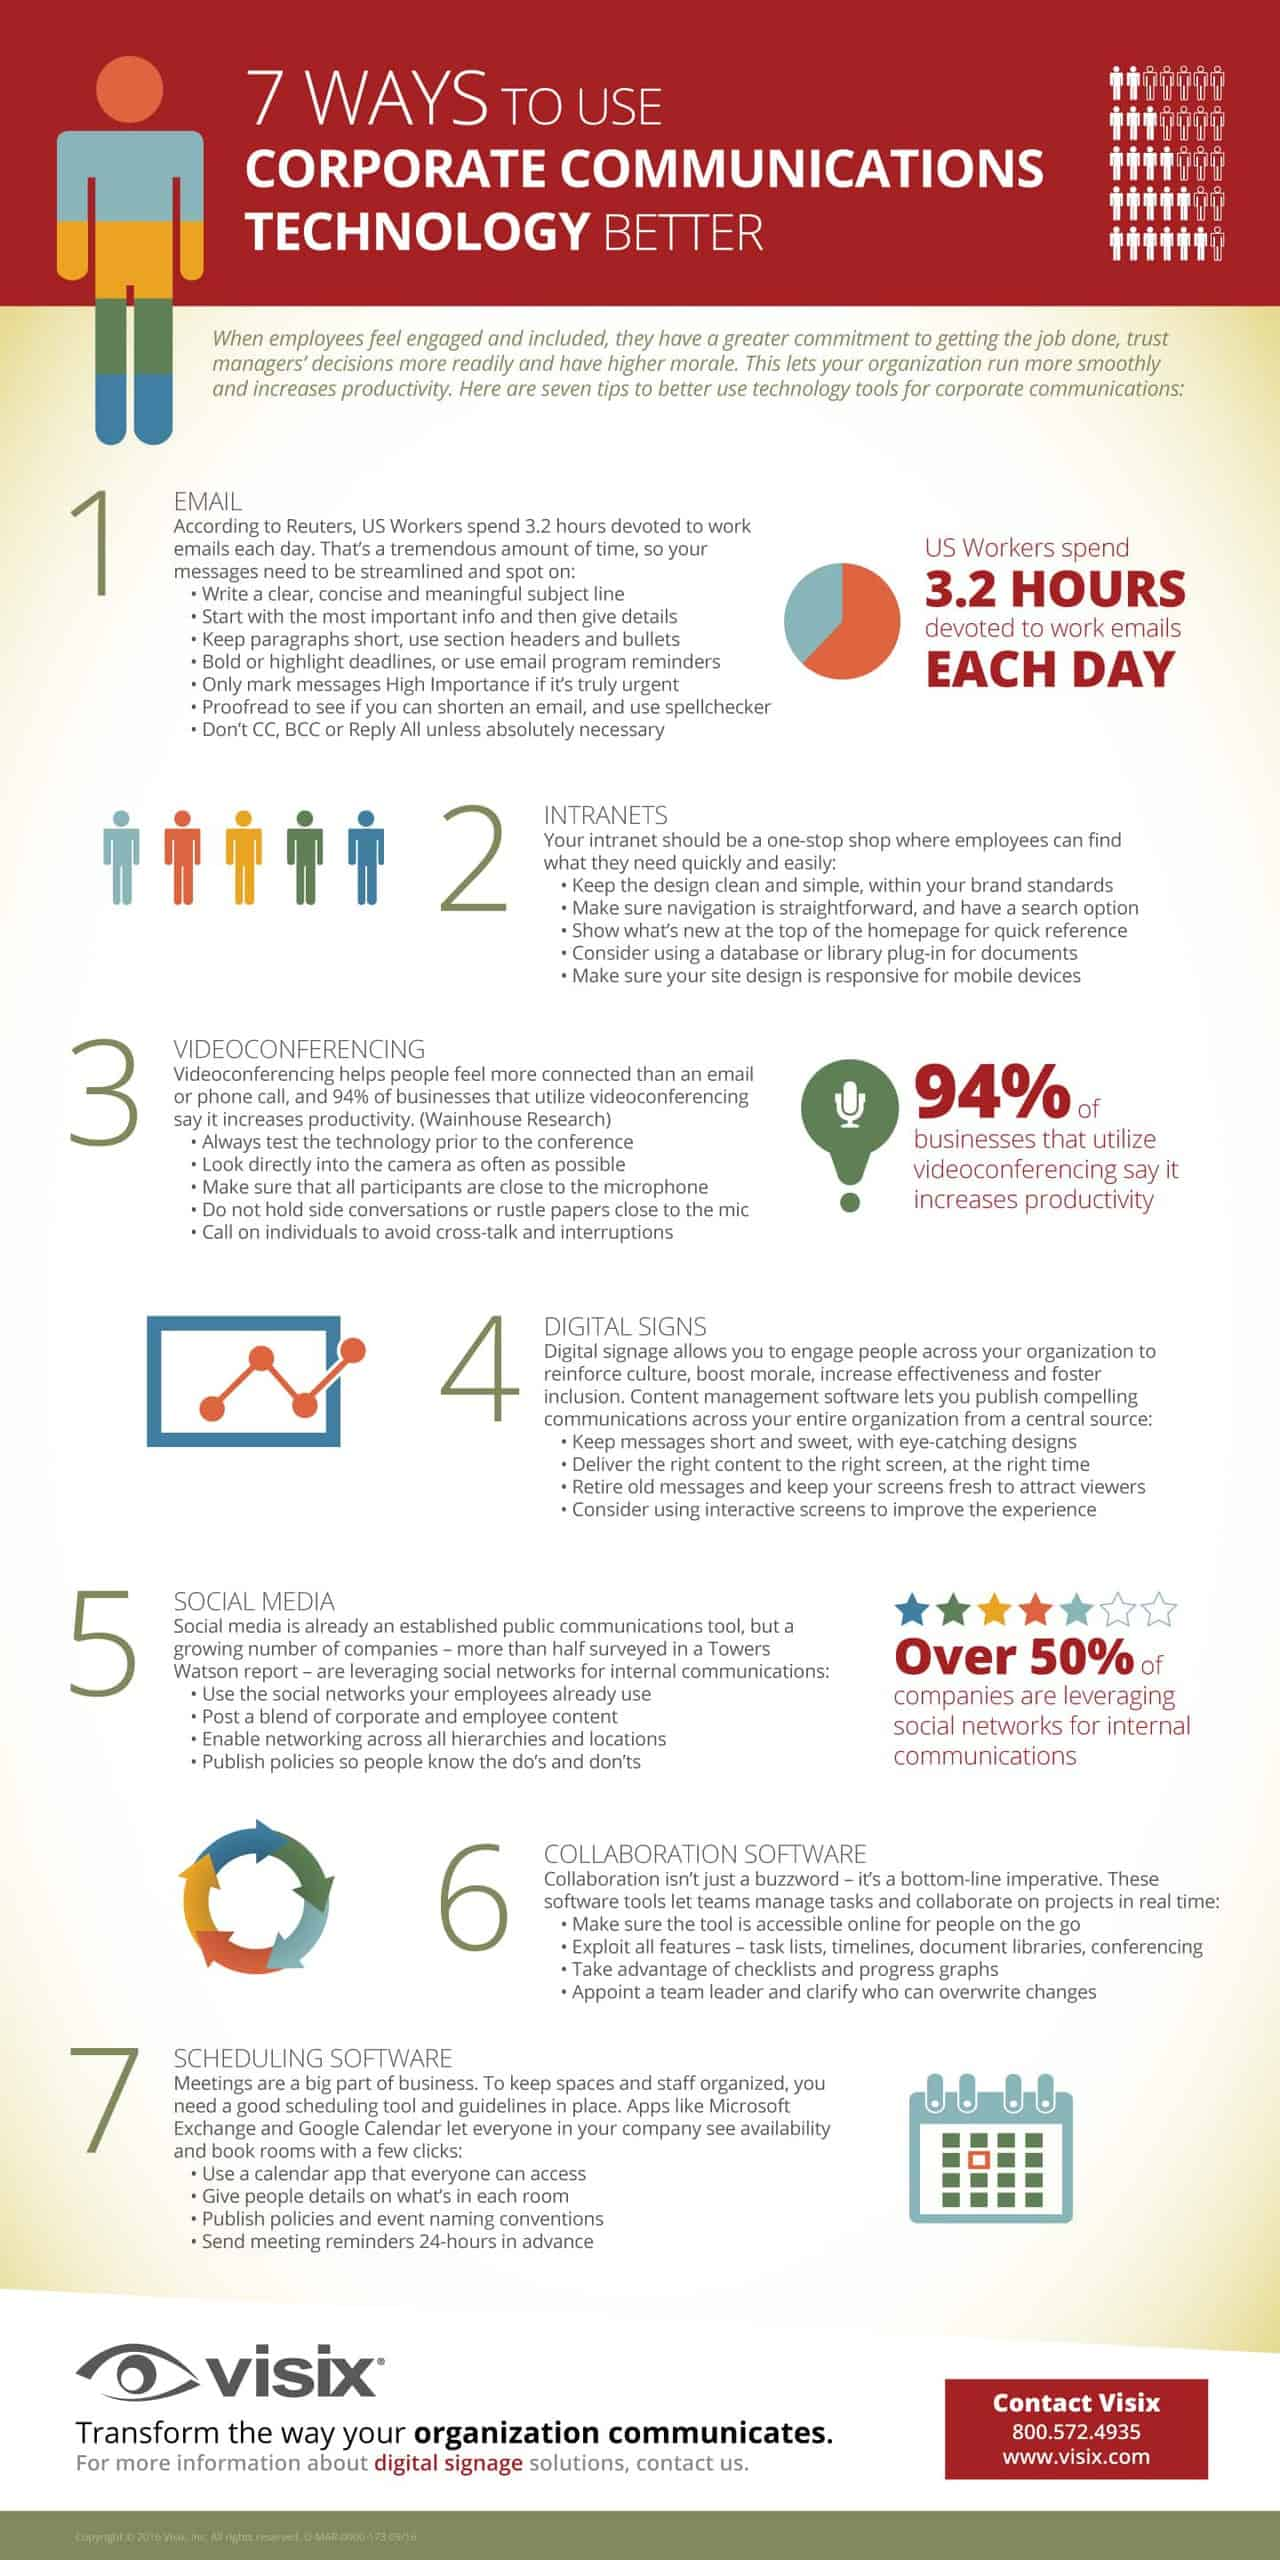 For a closer and more in-depth look at corporate communications, check out this infographic.